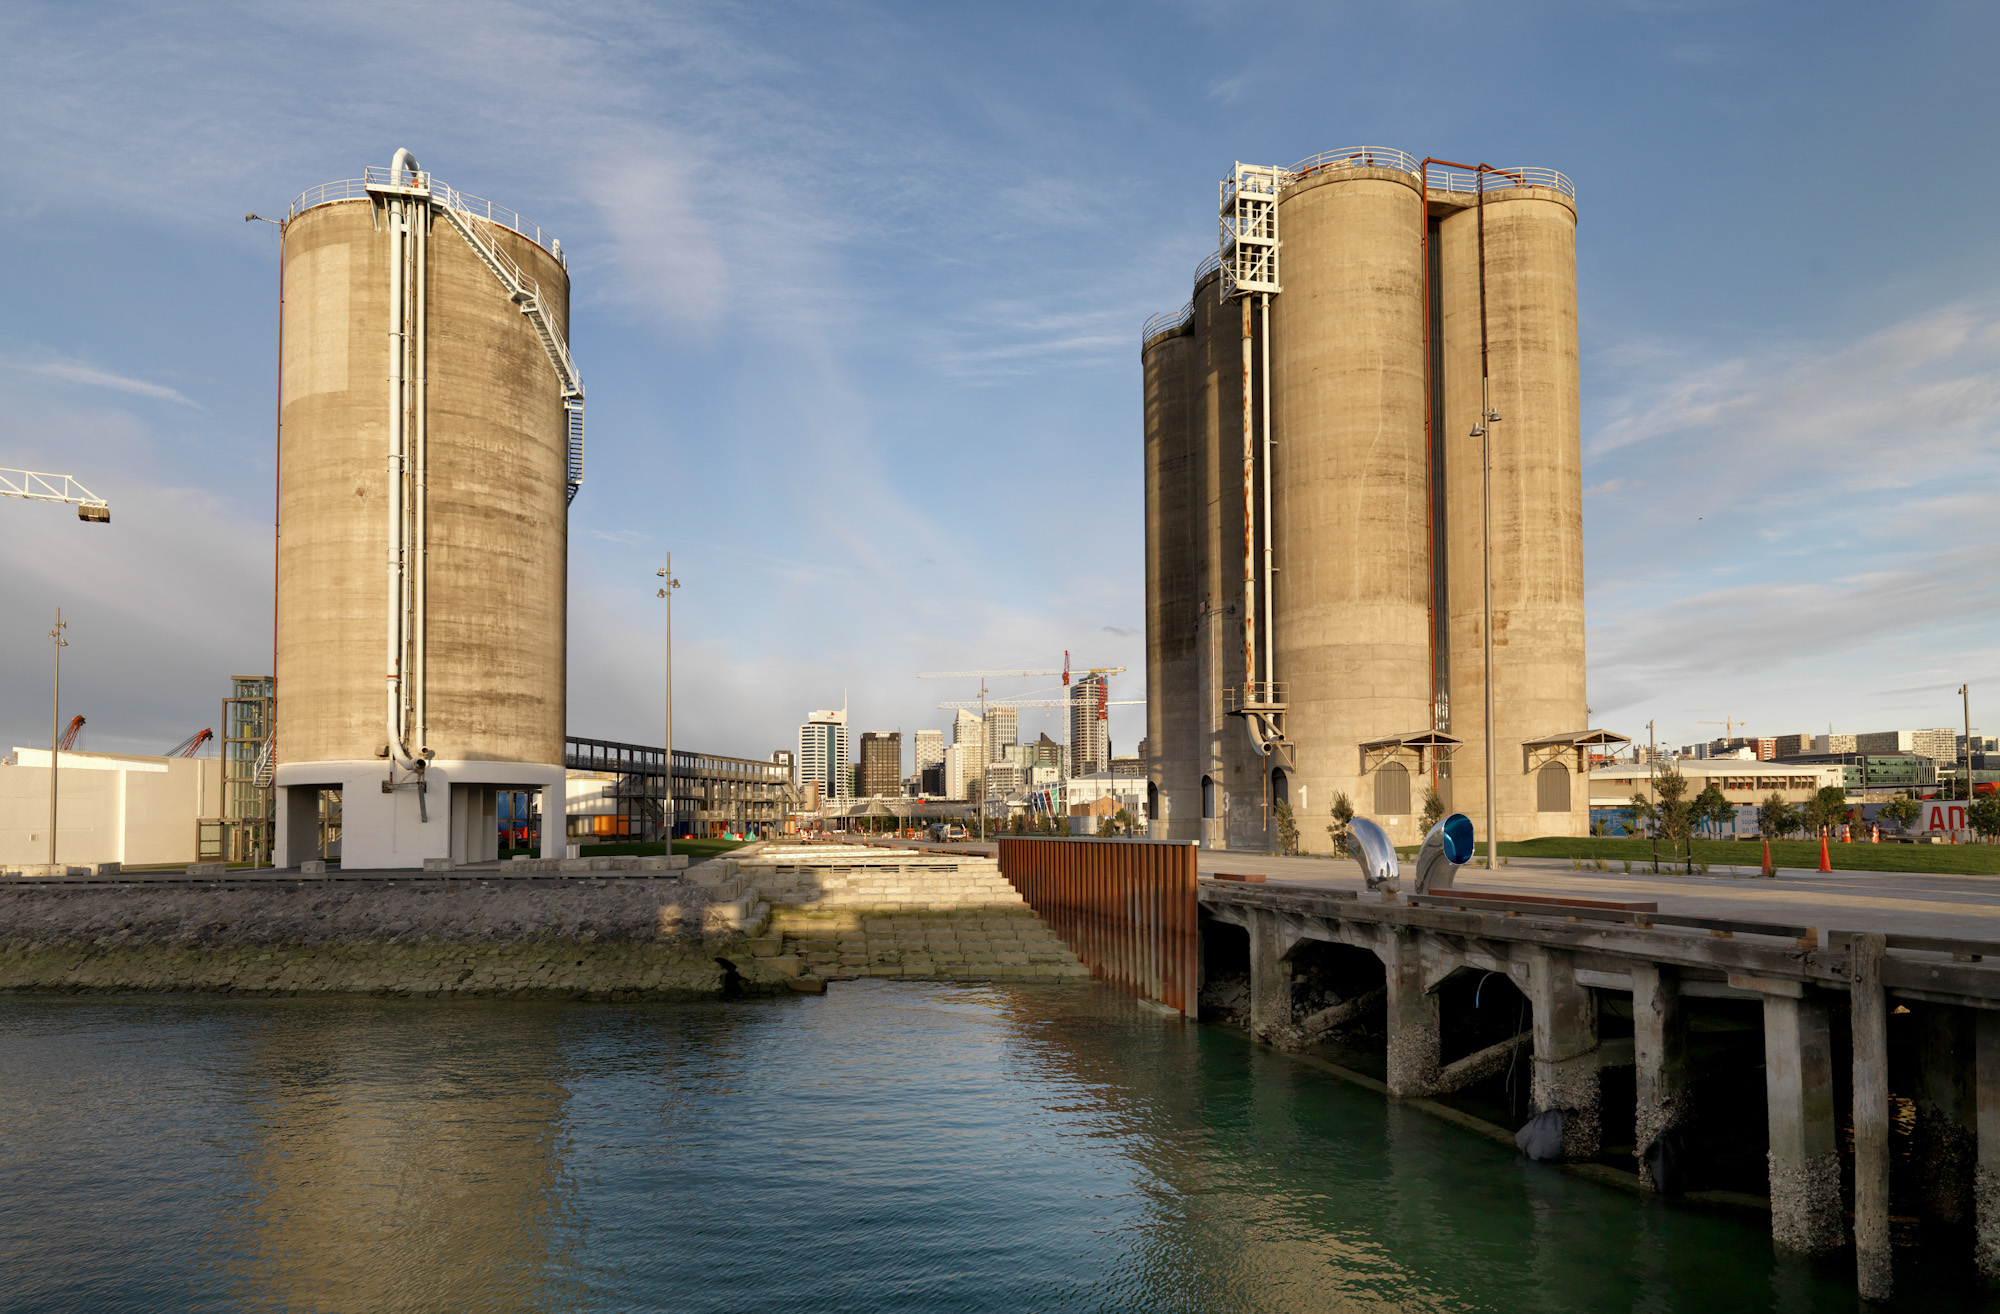 The beautiful silo park on a sunny day.